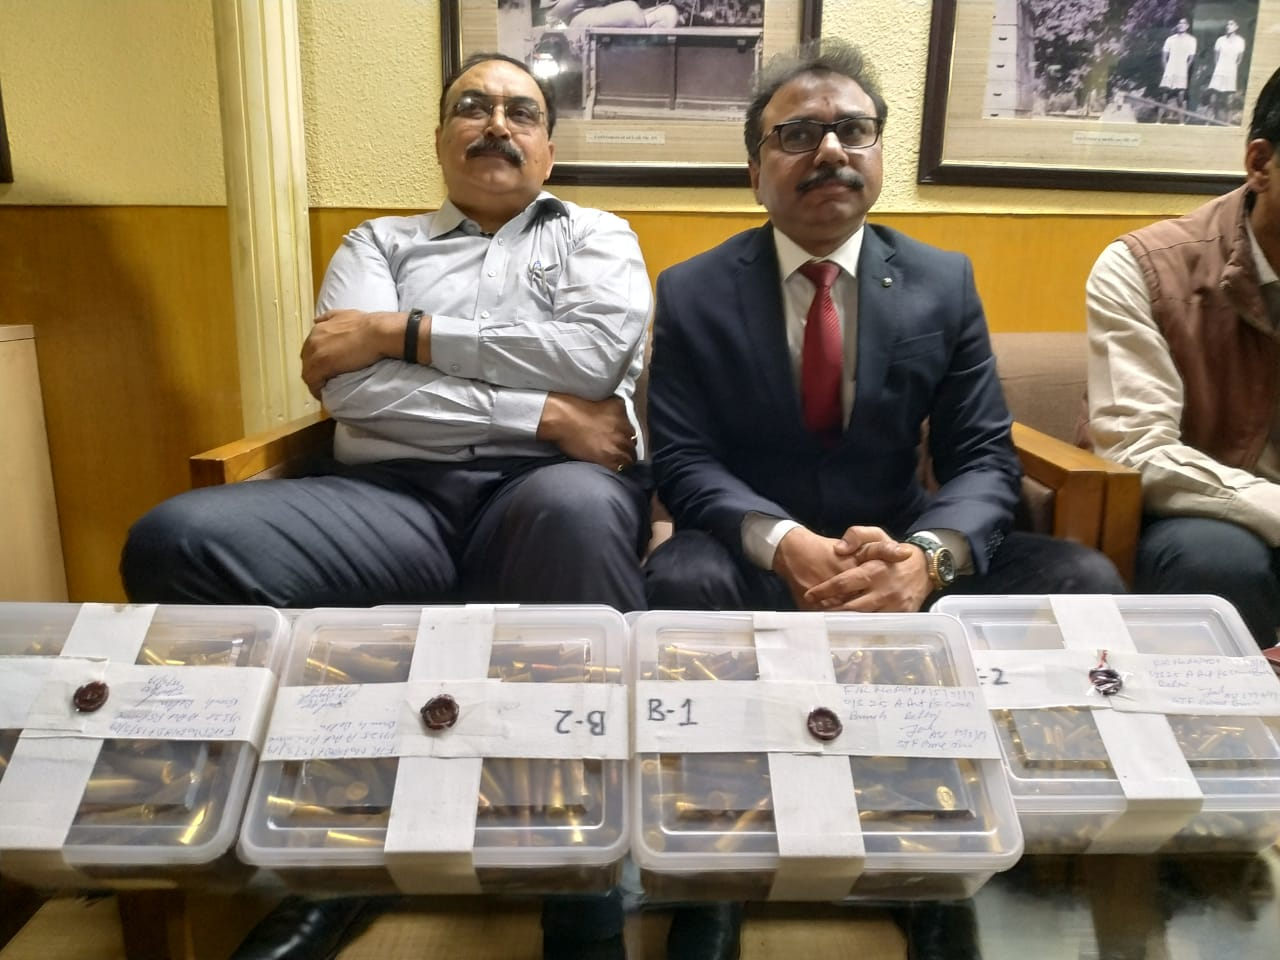 Police officials including Ram Gopal Naik (Center) with the 2000 seized live cartridges in New Delhi on Saturday.